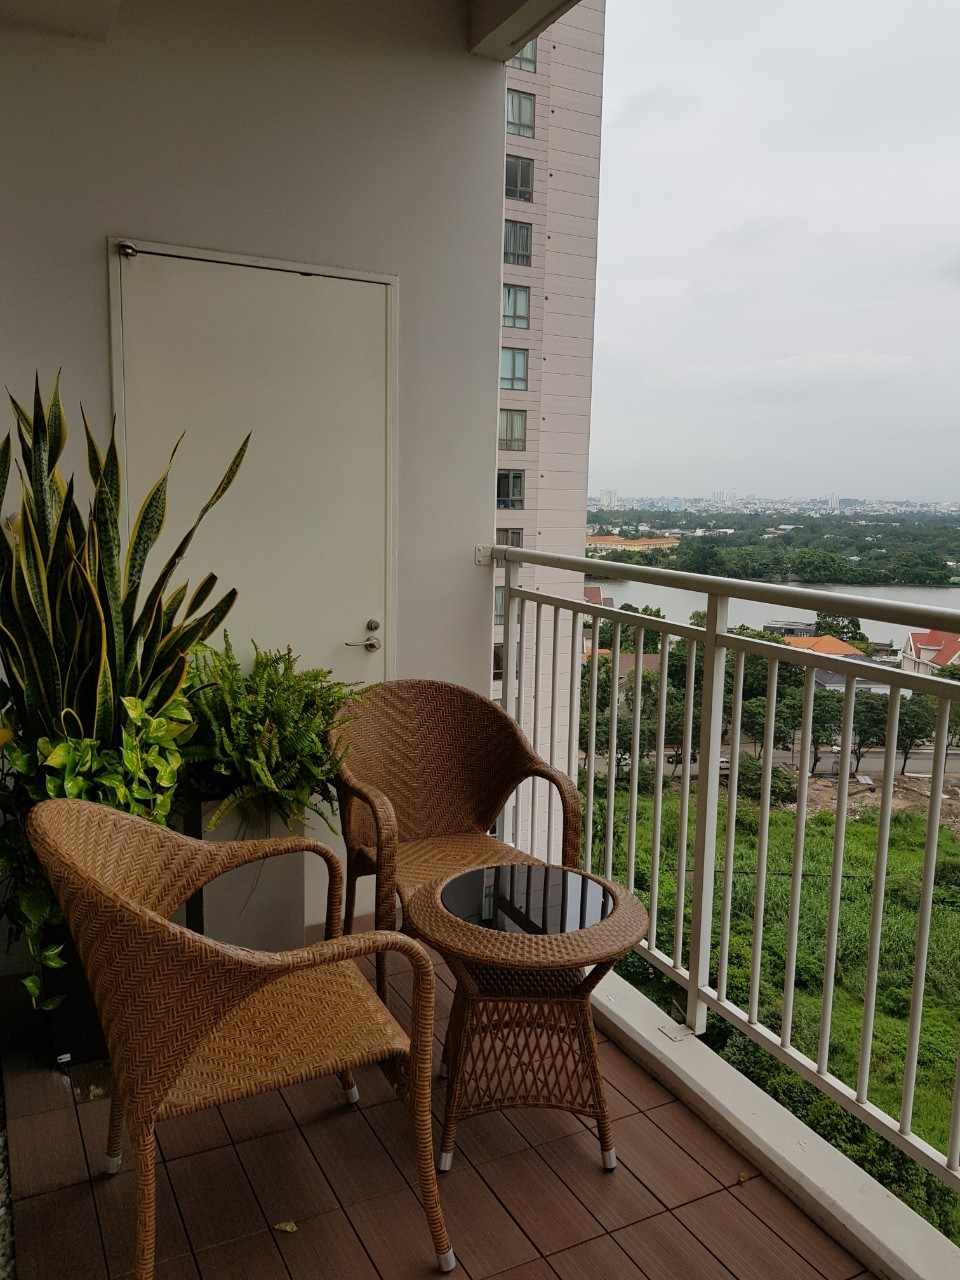 Xi Apartment Nice Furniture Good View in Thao Dien D206096 (13)